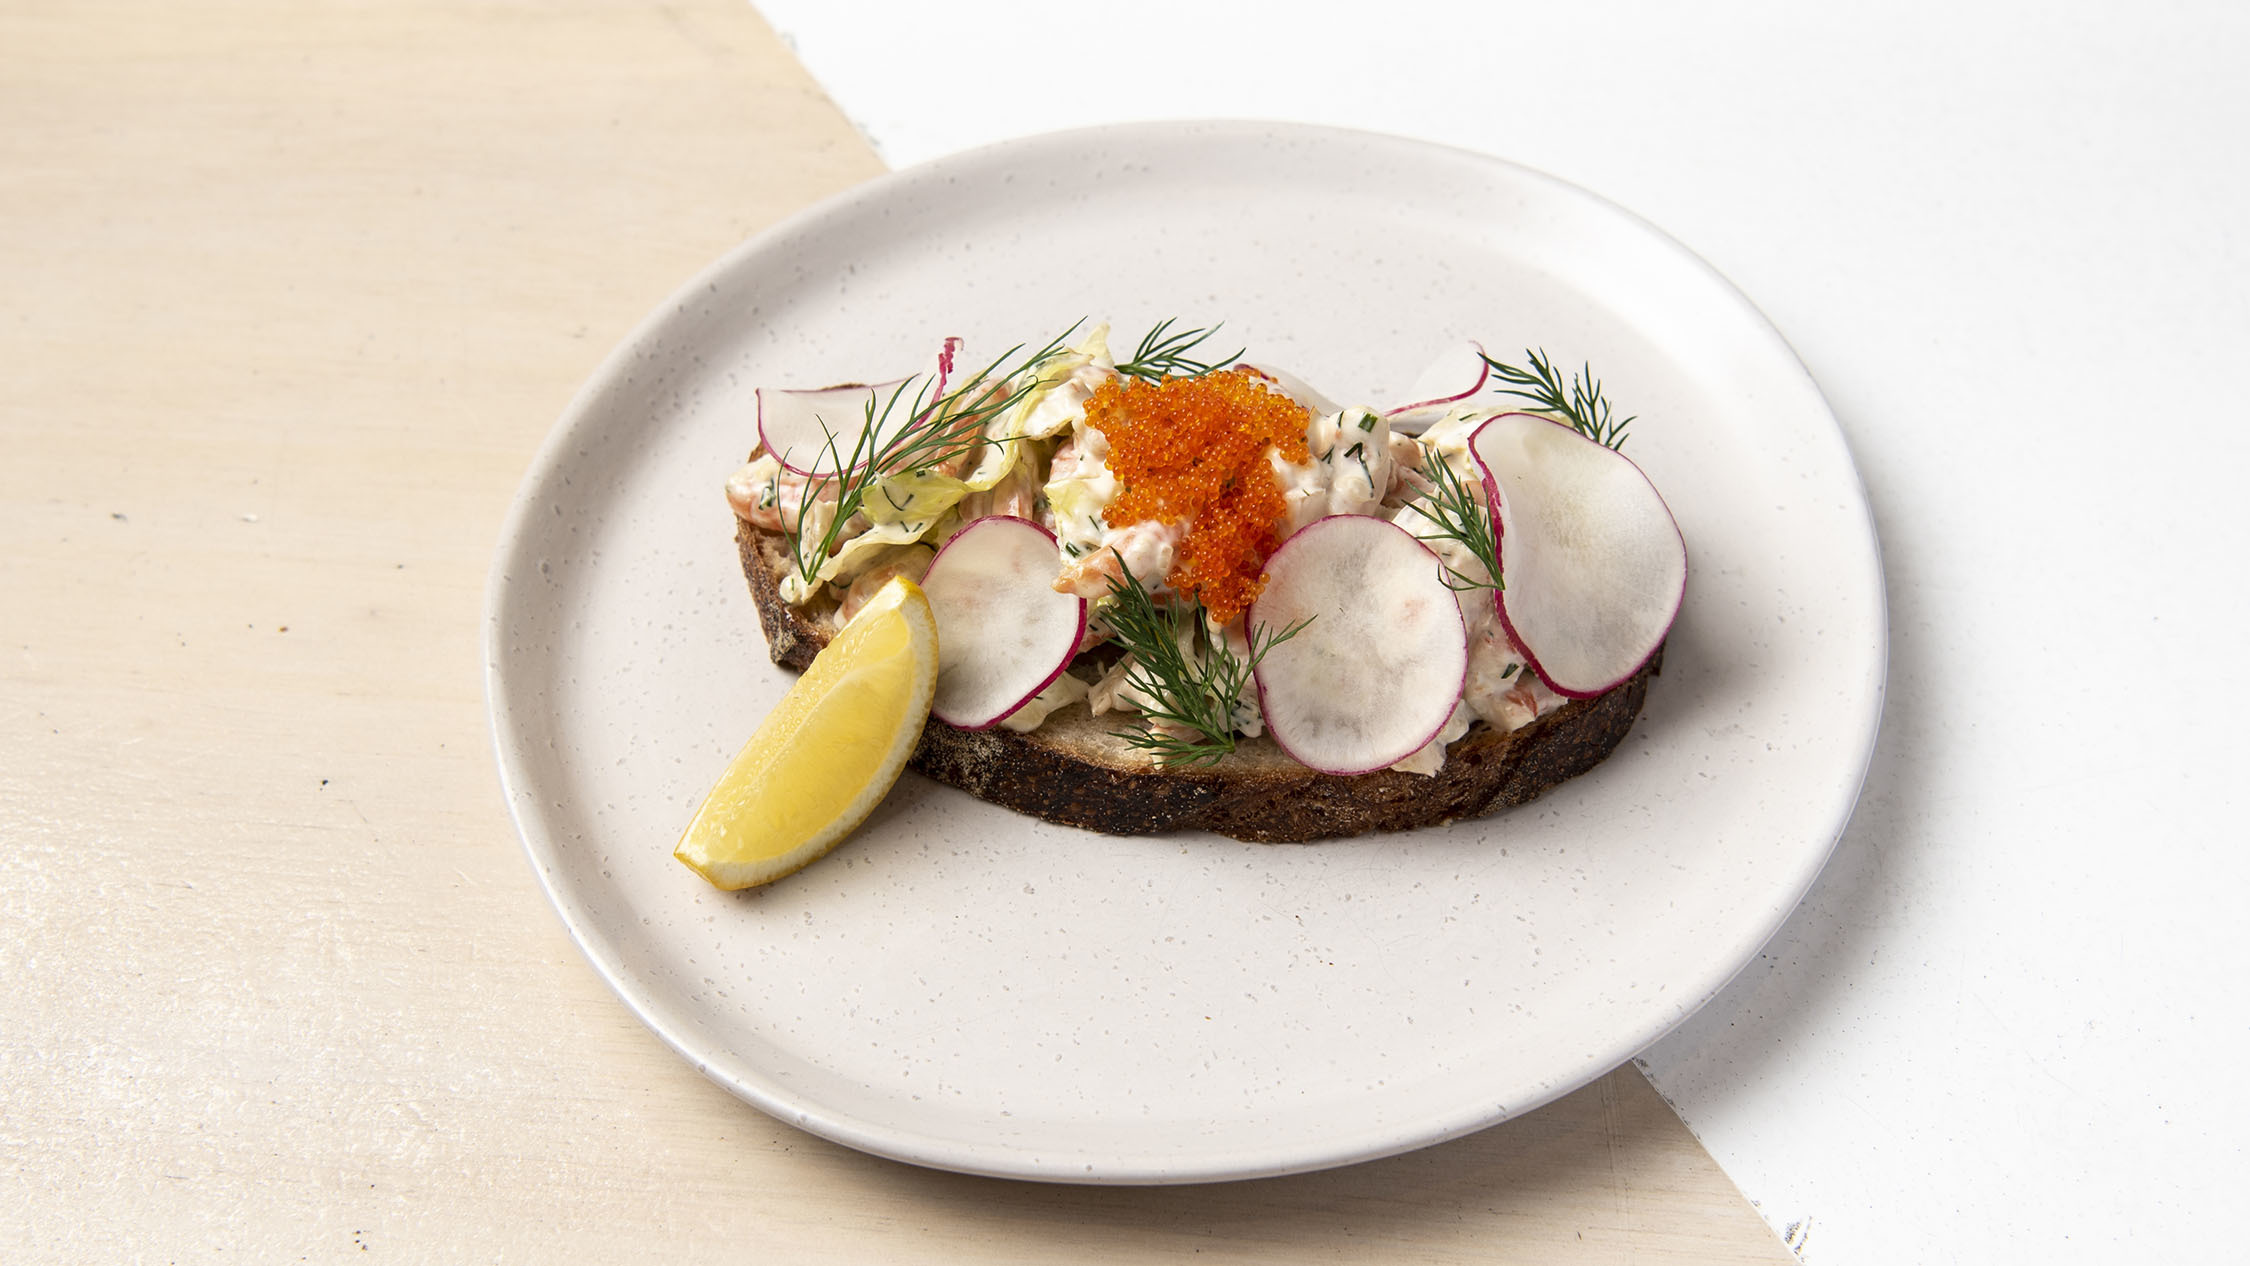 A piece of toast on a plate with prawn salad on top